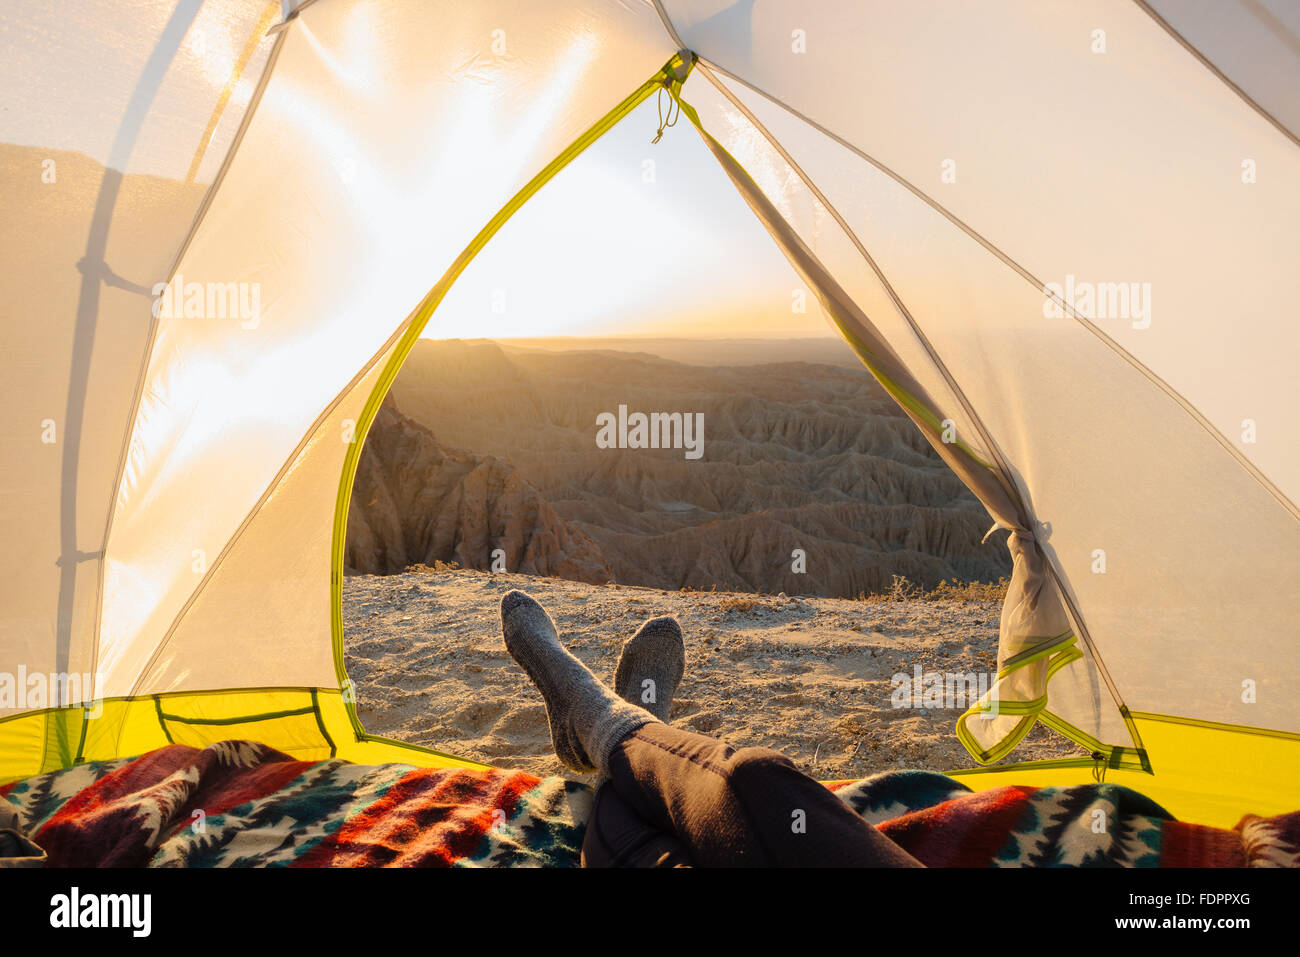 Camping at Font's Point in Anza-Borrego Desert State Park, California - Stock Image